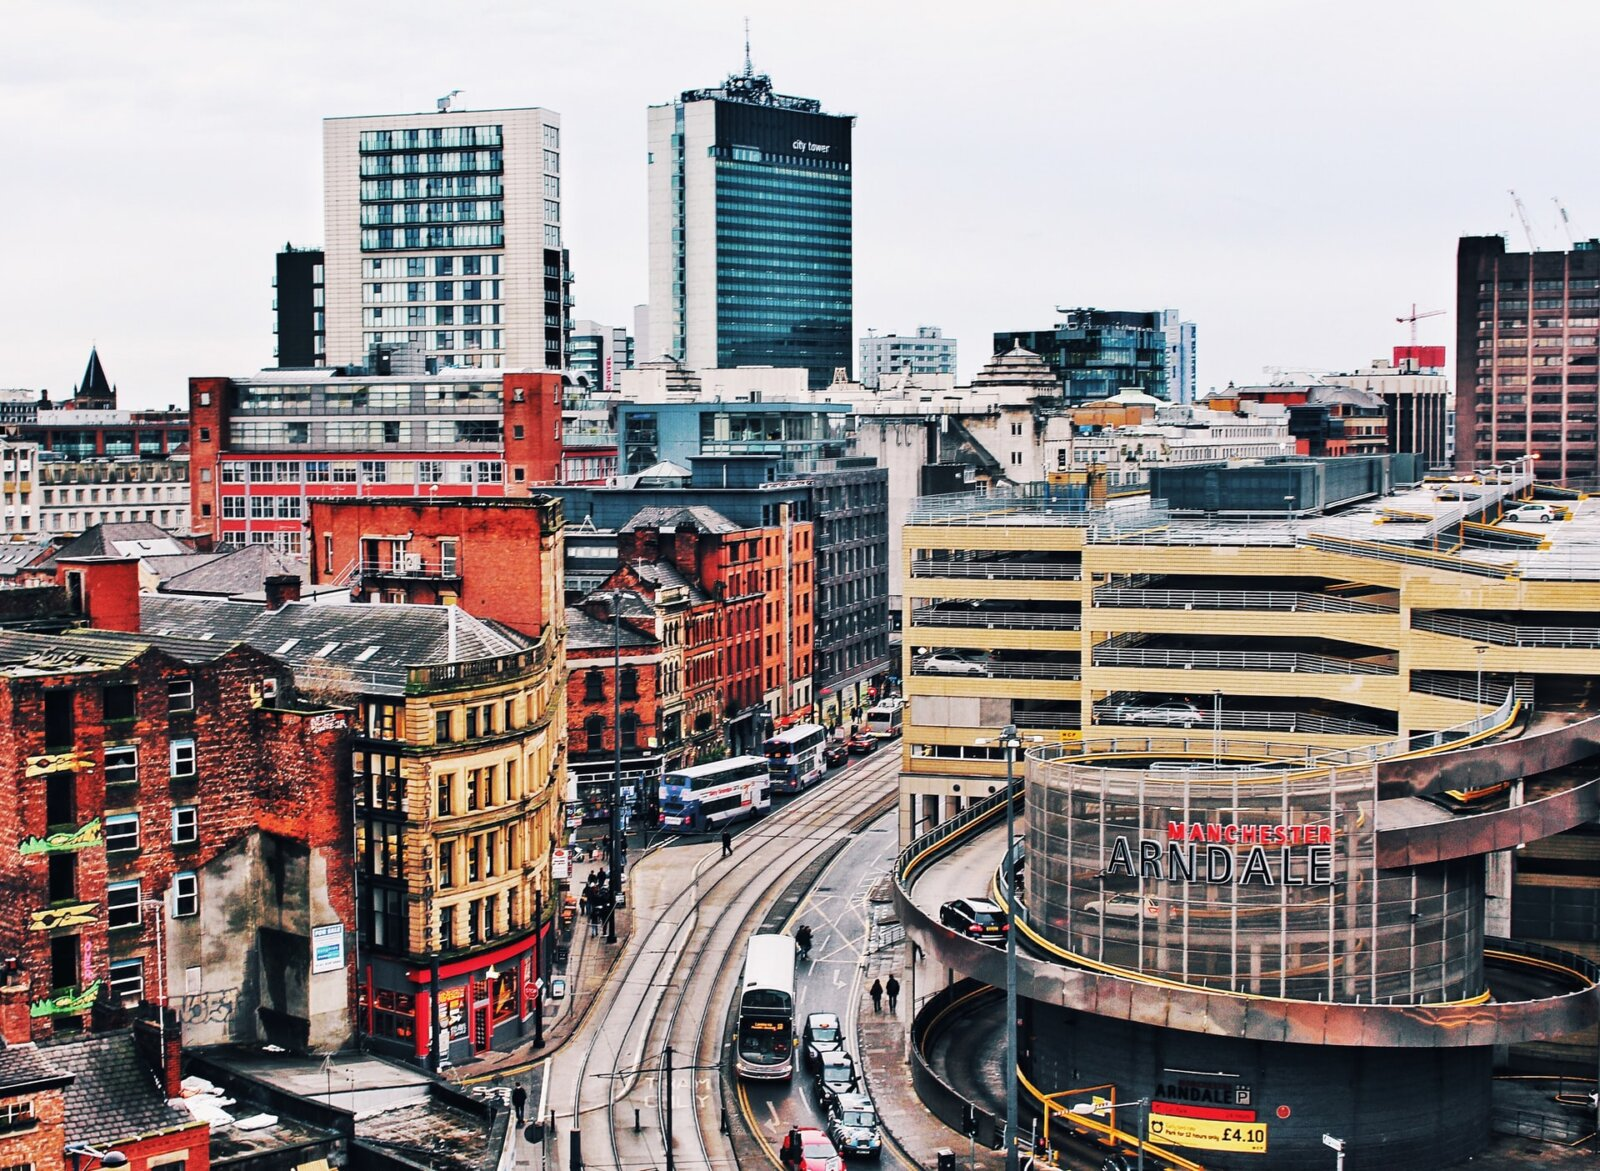 A beginner's guide to the casino scene in Manchester, The Manc